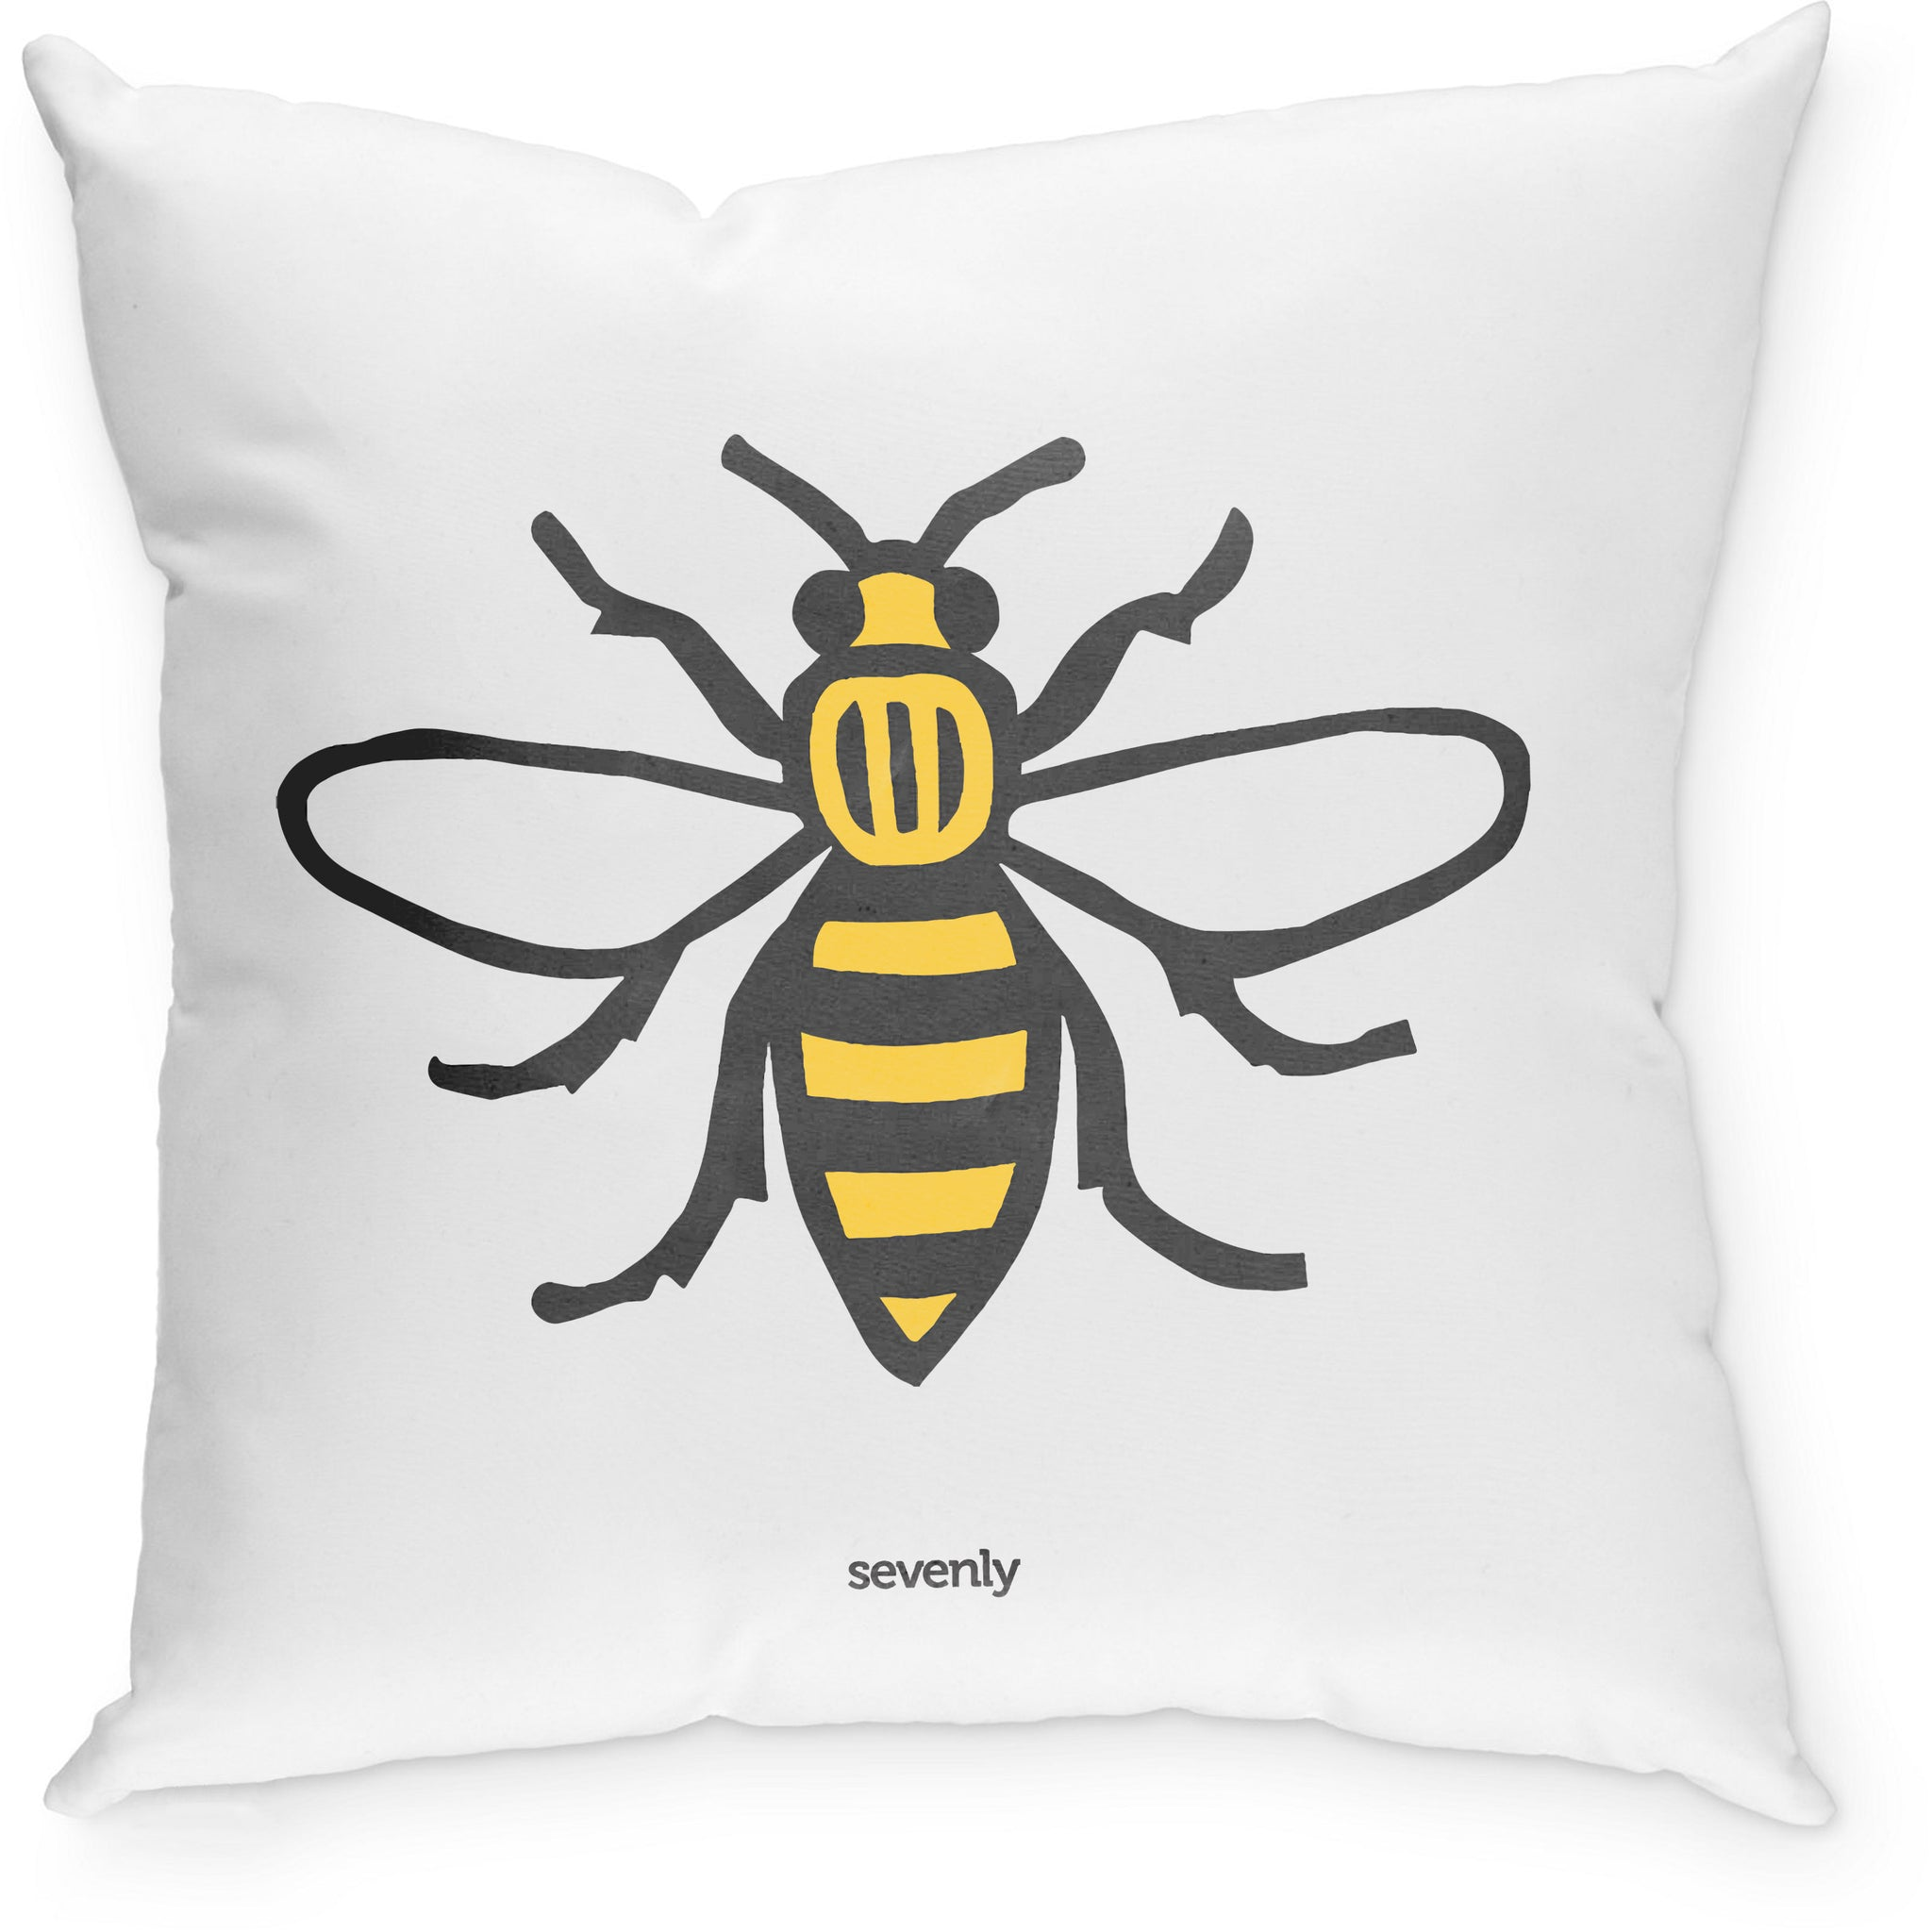 SEVENLY  HOME GOODS - COTTON CANVAS DOWN THROW PILLOW - HONEY BEE